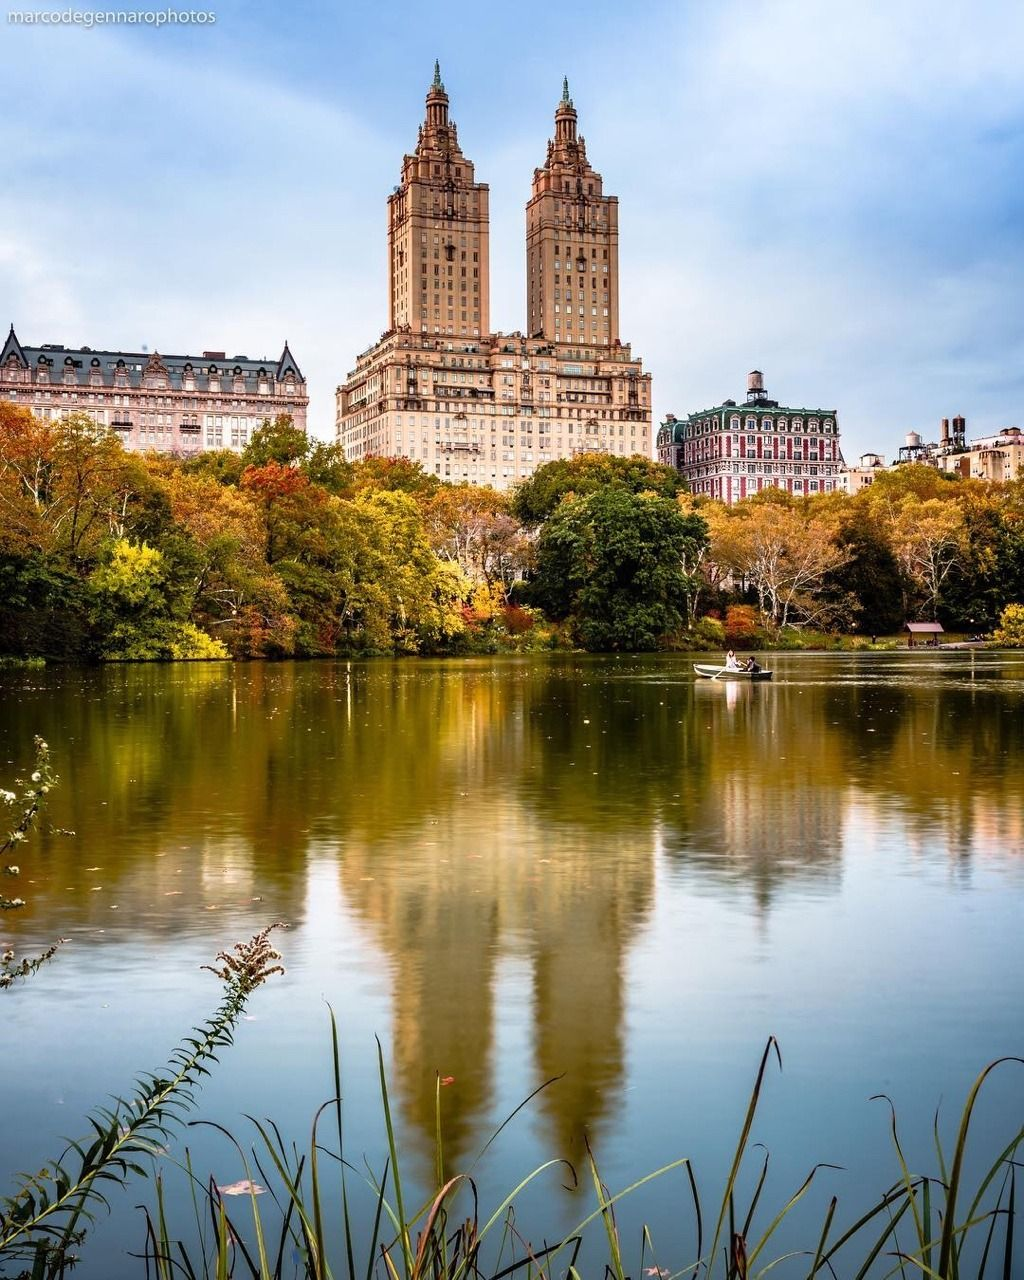 Autumn in Central Park by Marco Degennaro Photography - The Best ...